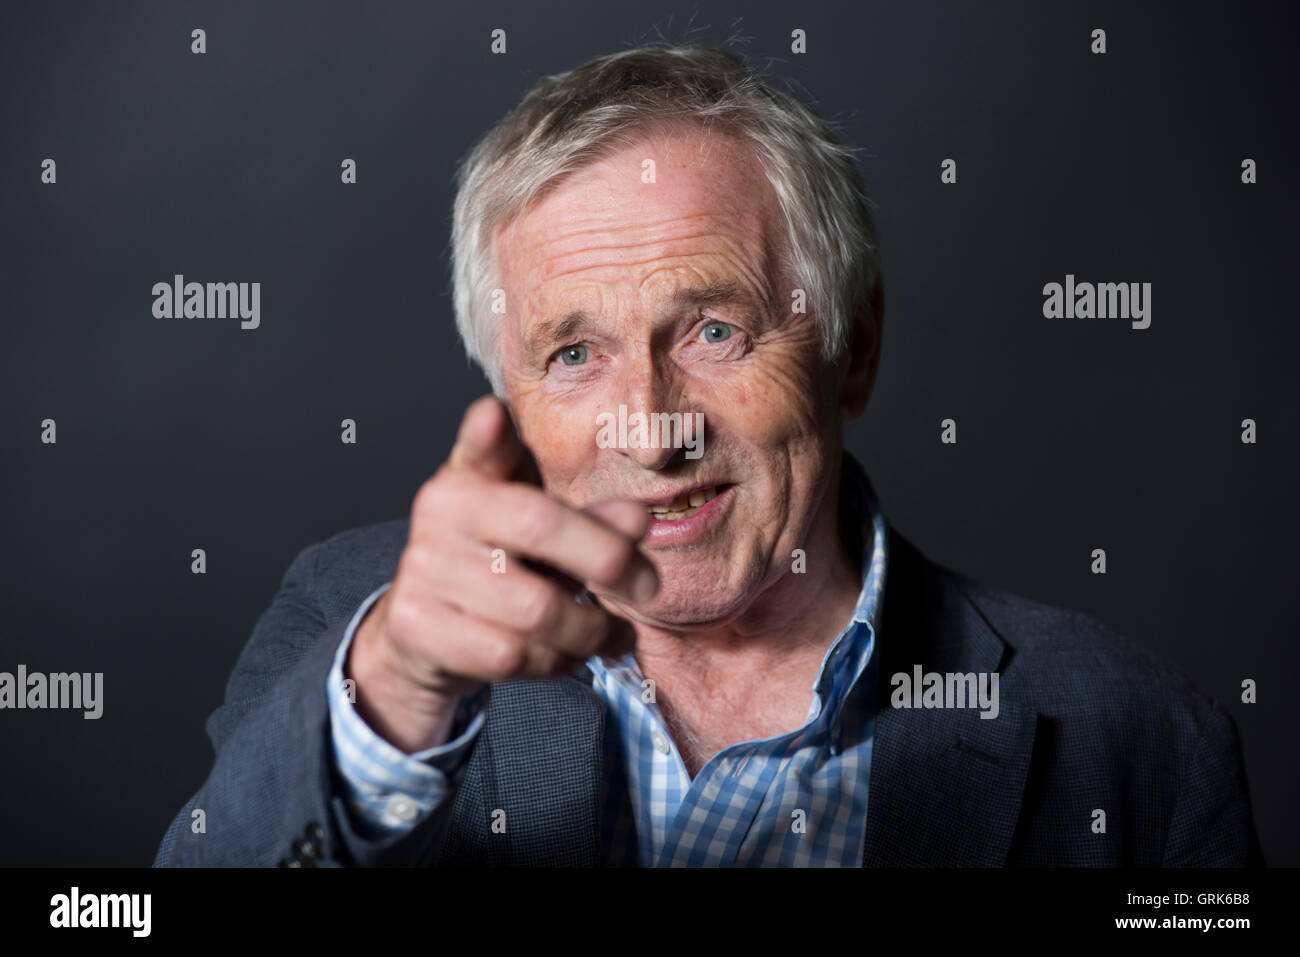 British presenter, political commentator and writer Jonathan Dimbleby. - Stock Image